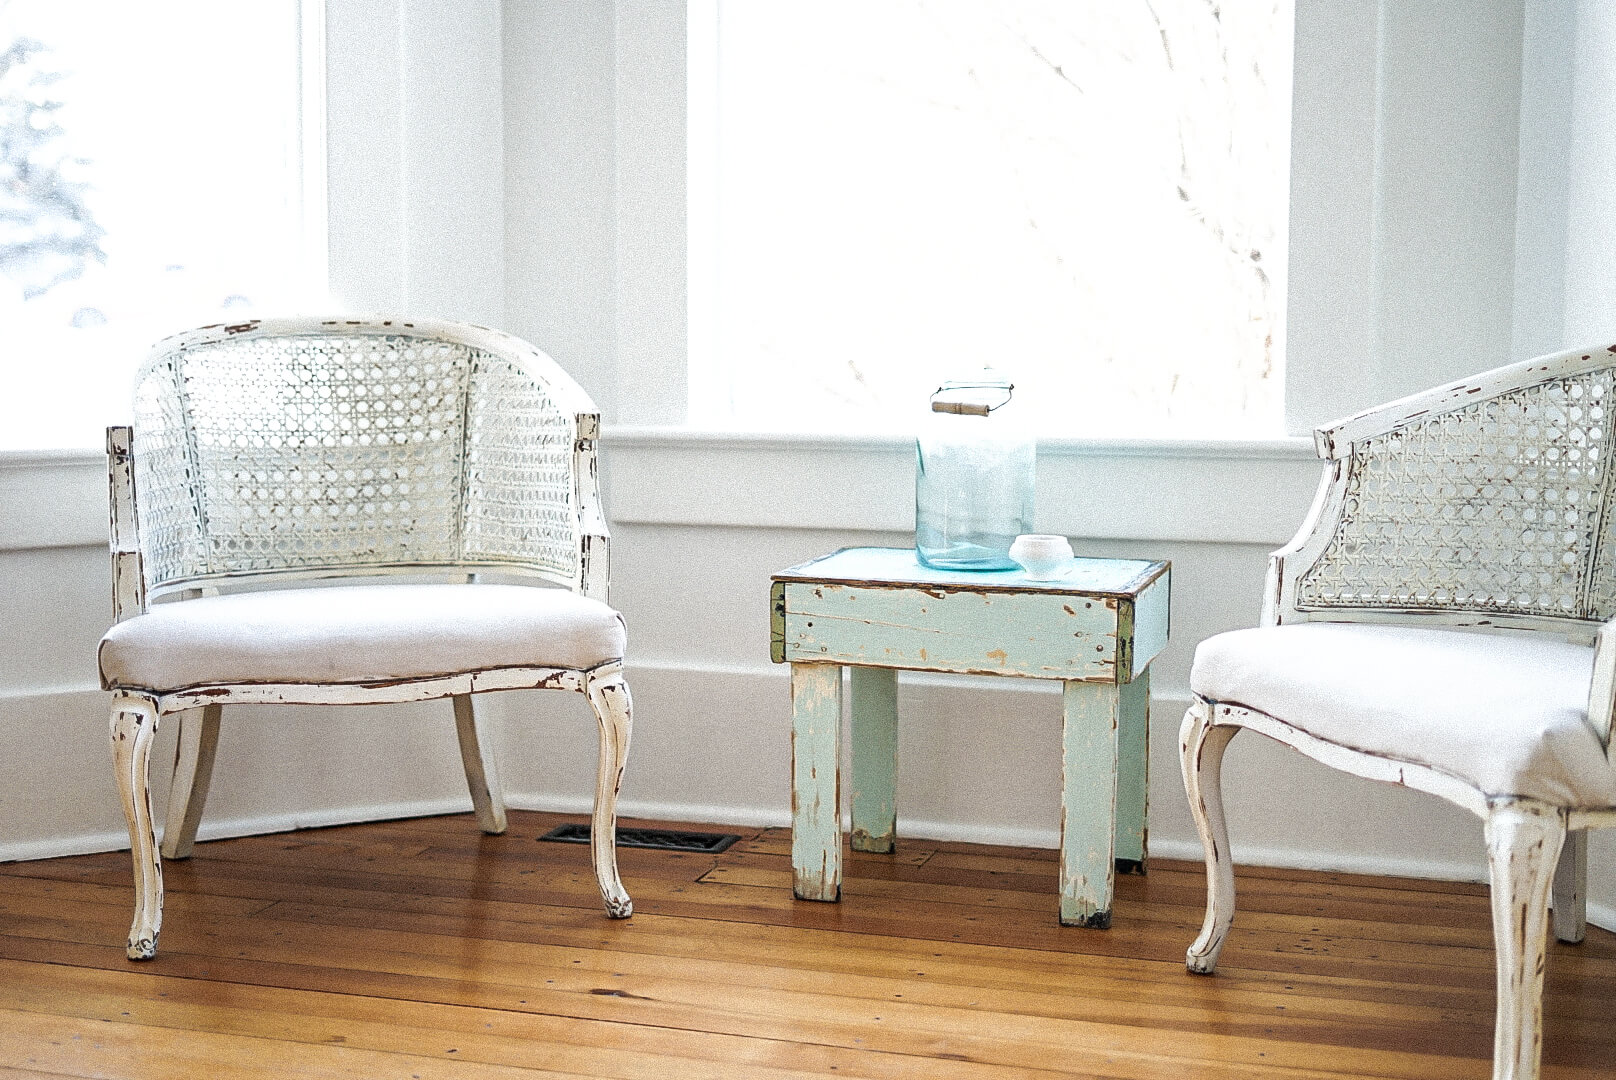 Chairs with small side table